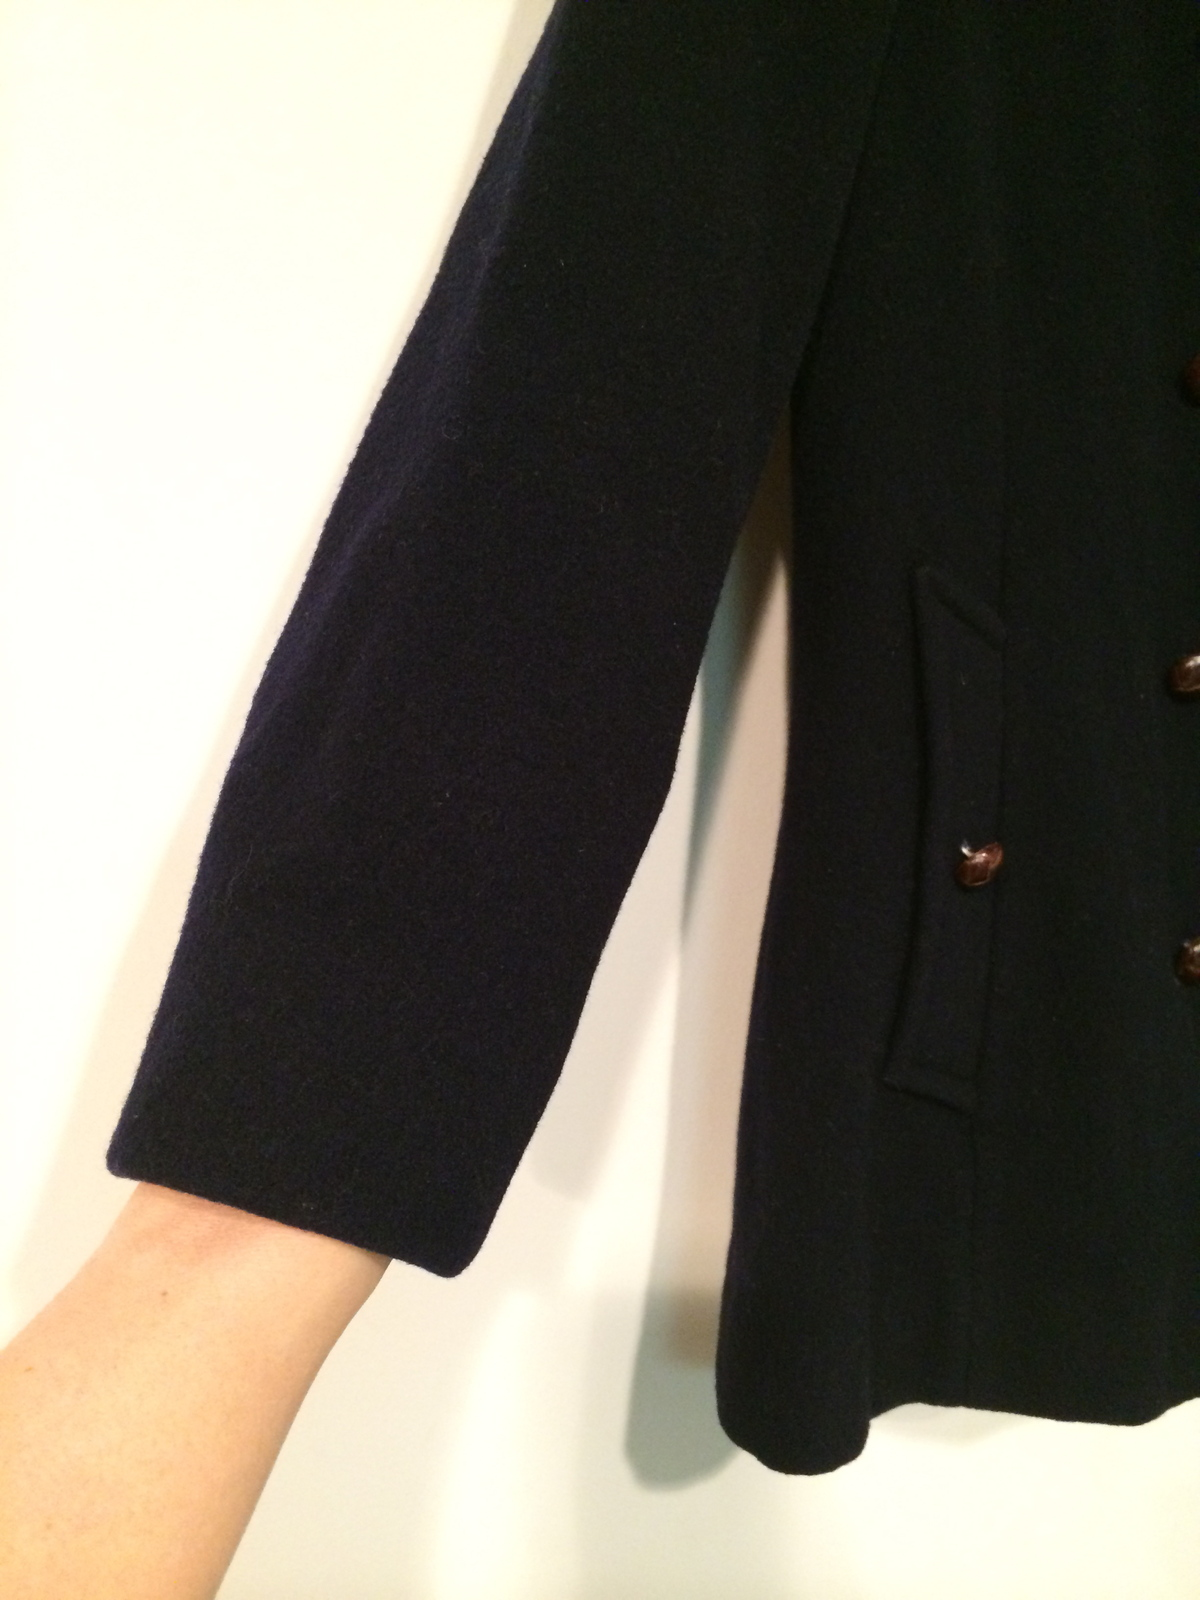 Mackintosh Authentic Peacoat 100% wool Made in U.S.A. Navy Blue True Vintage S